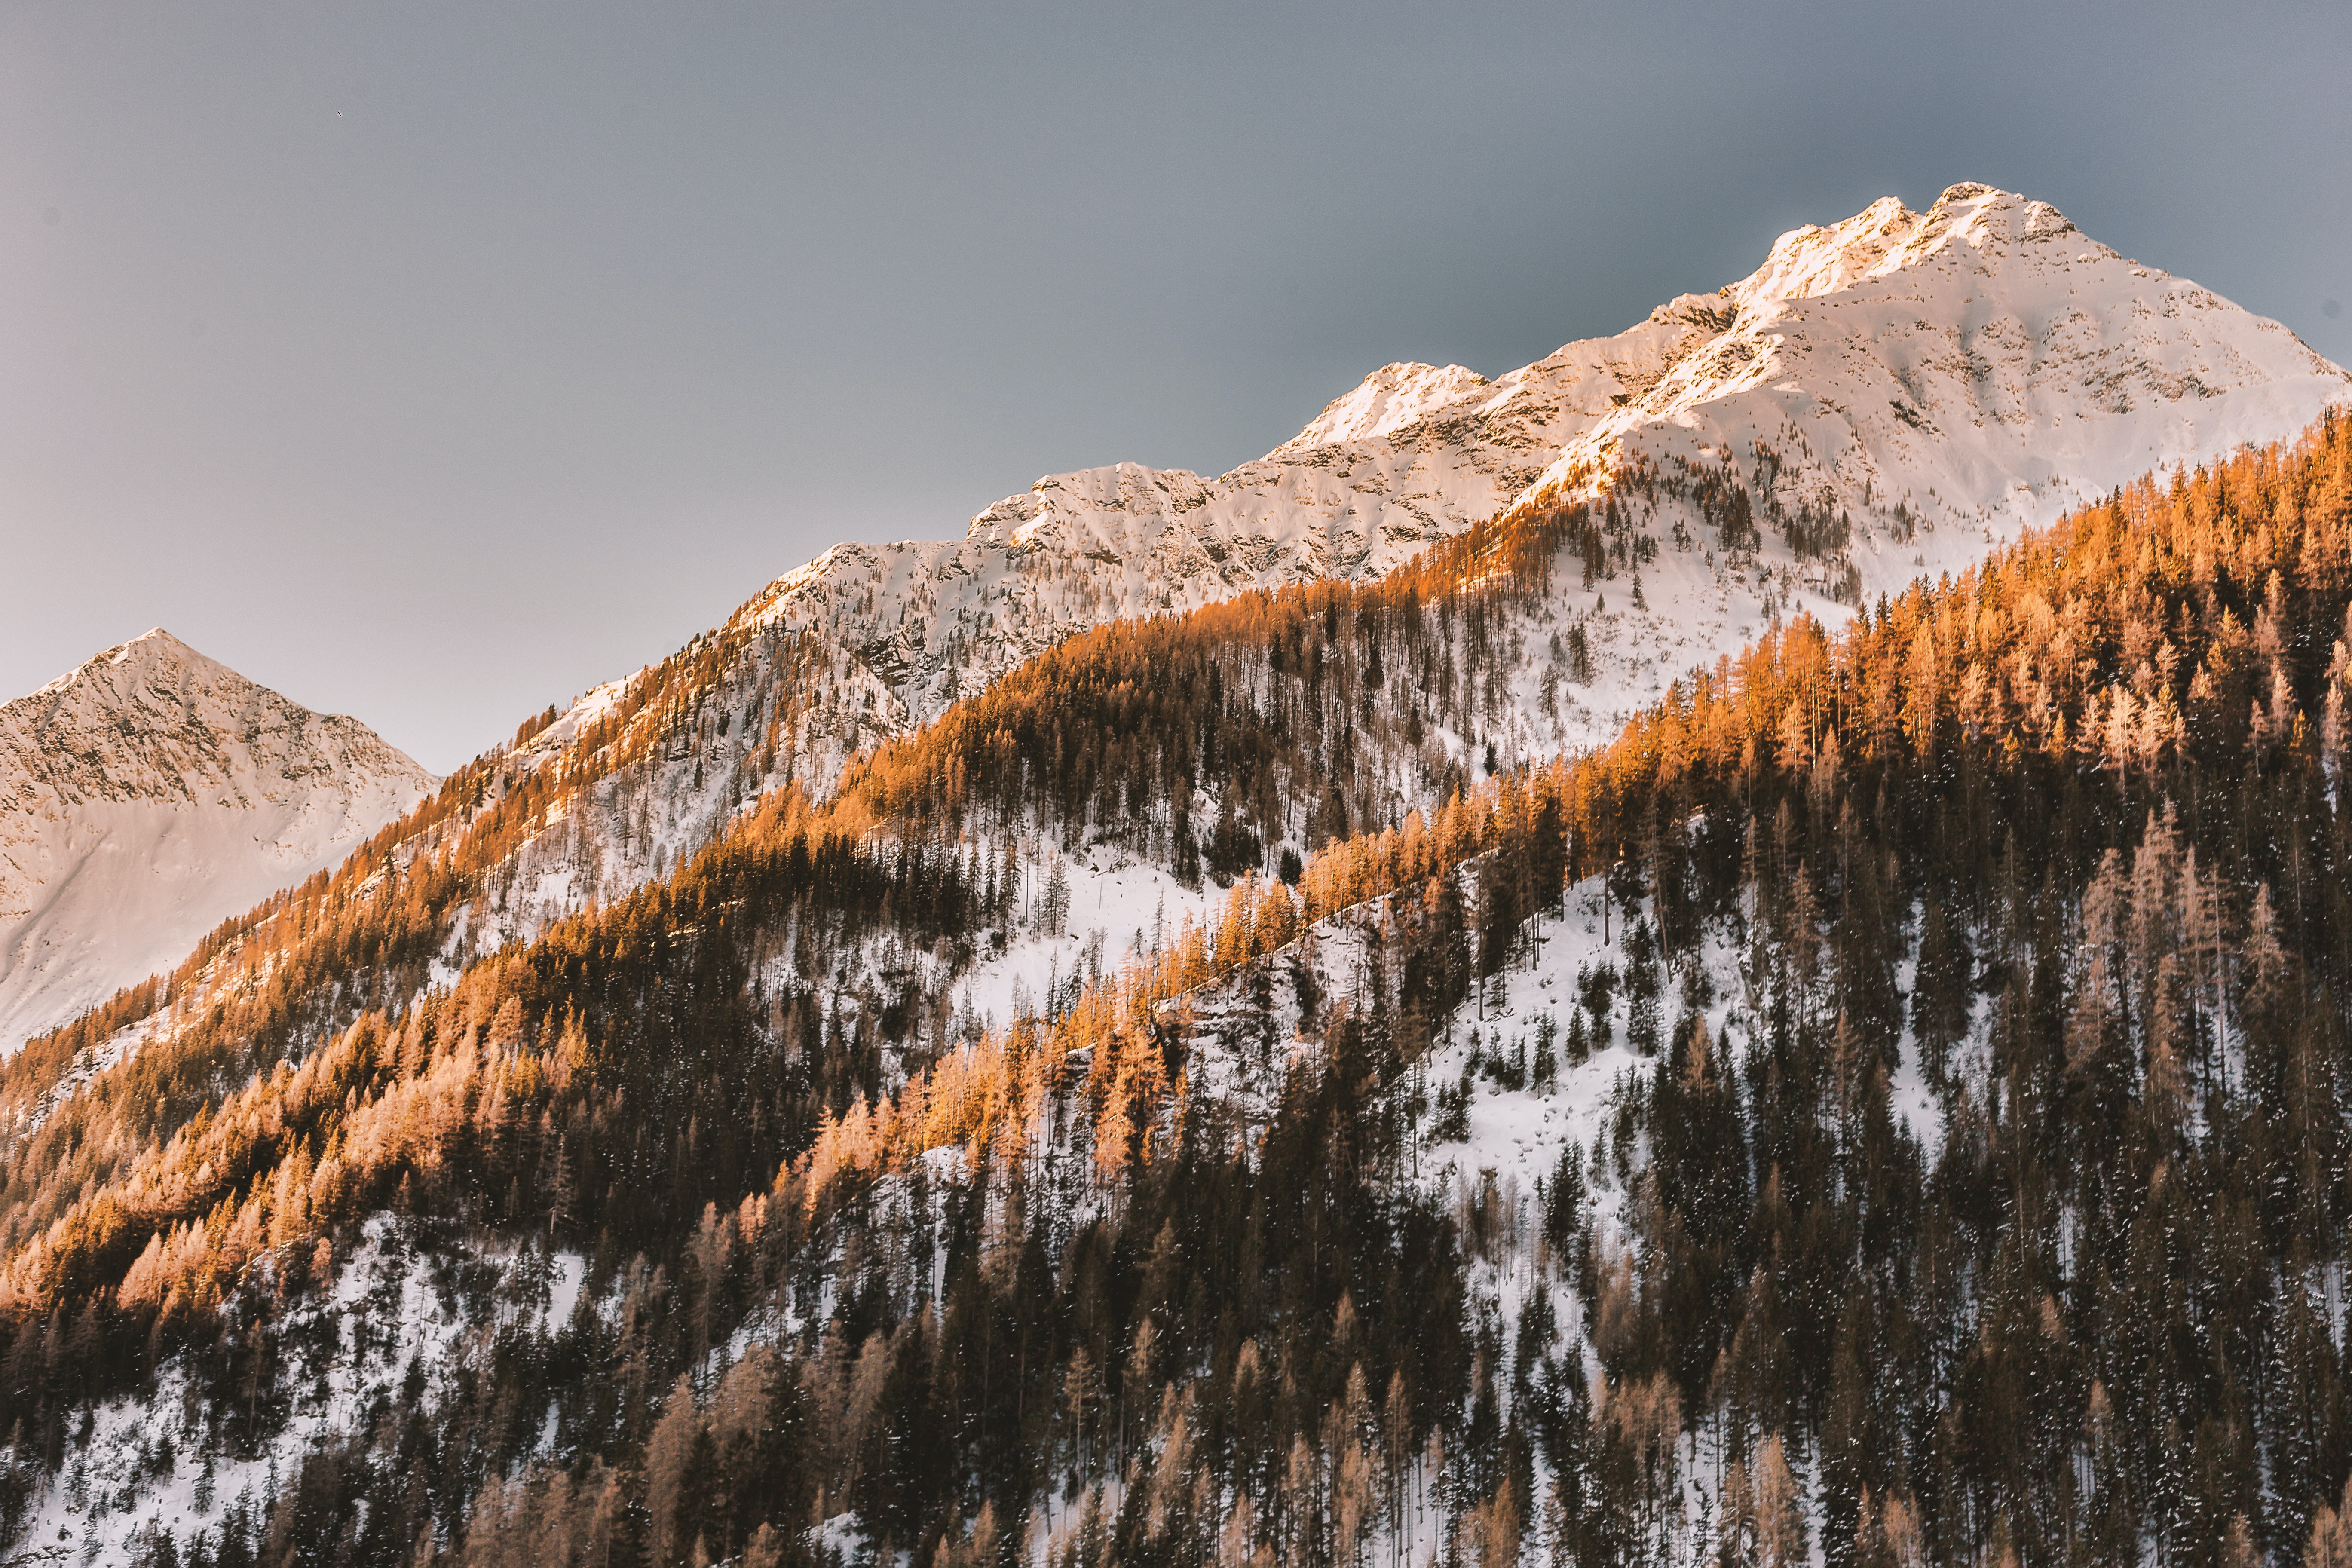 trees covered mountain